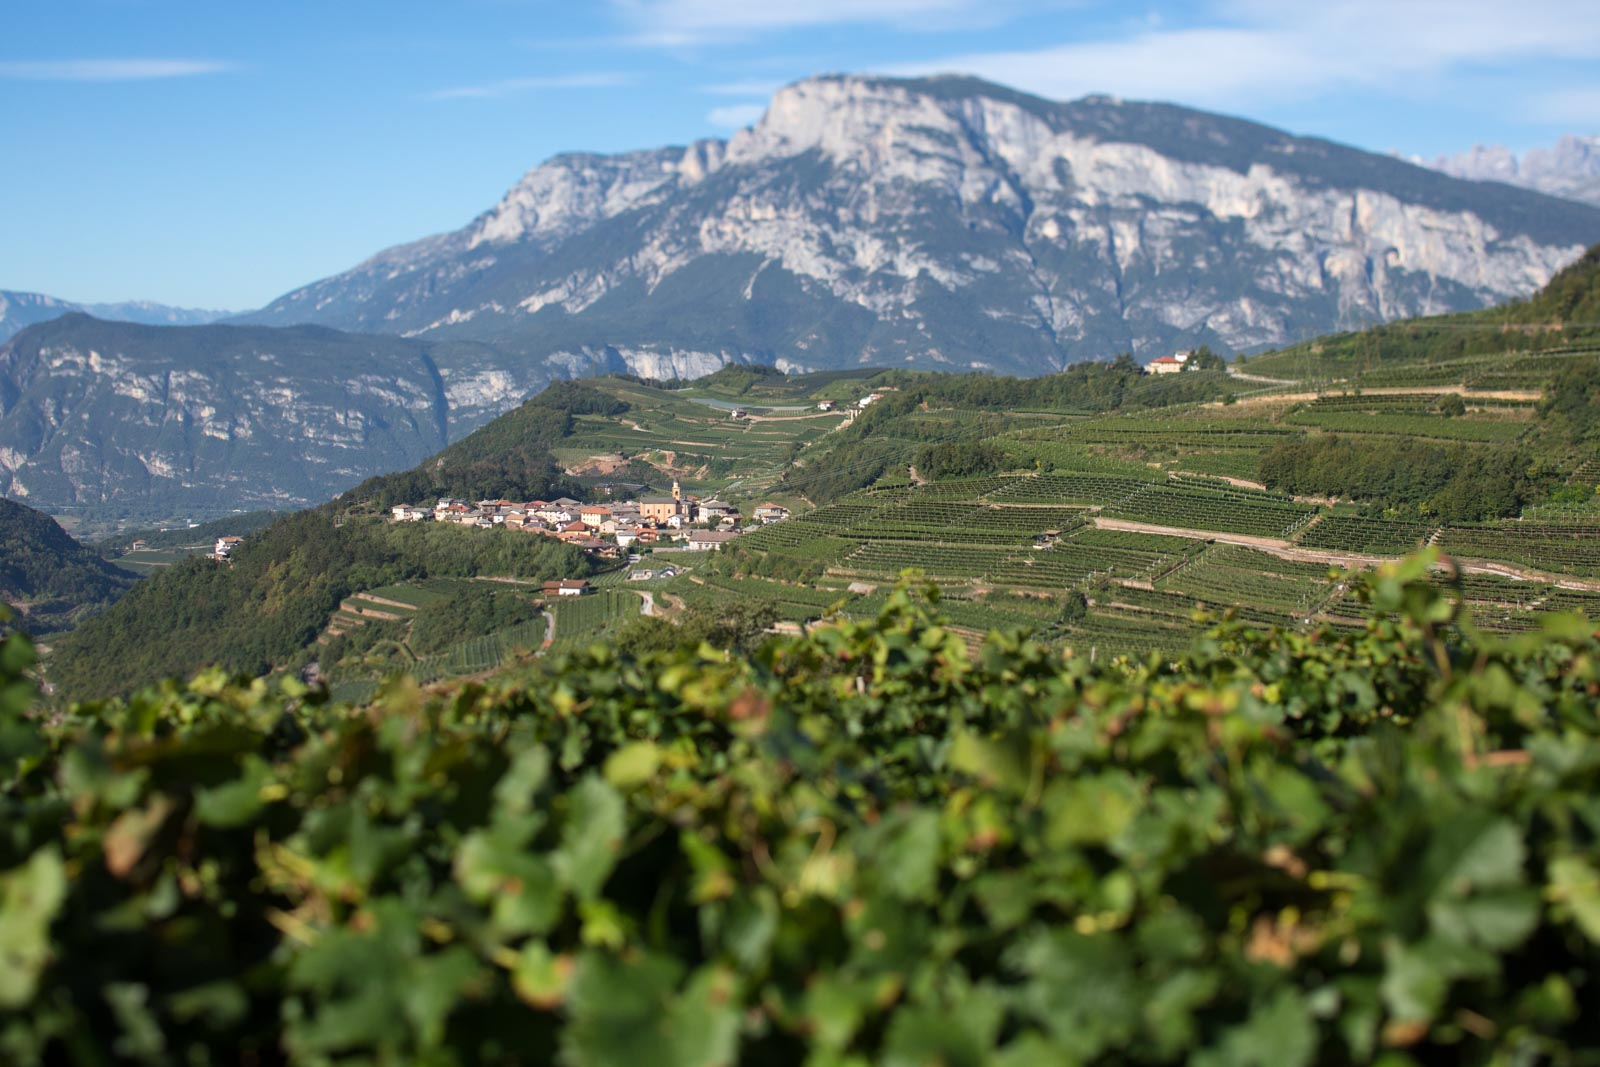 A view of the Val di Cembra, the high-elevation vineyards of Trentodoc in northern Italy. ©Kevin Day/Opening a Bottle